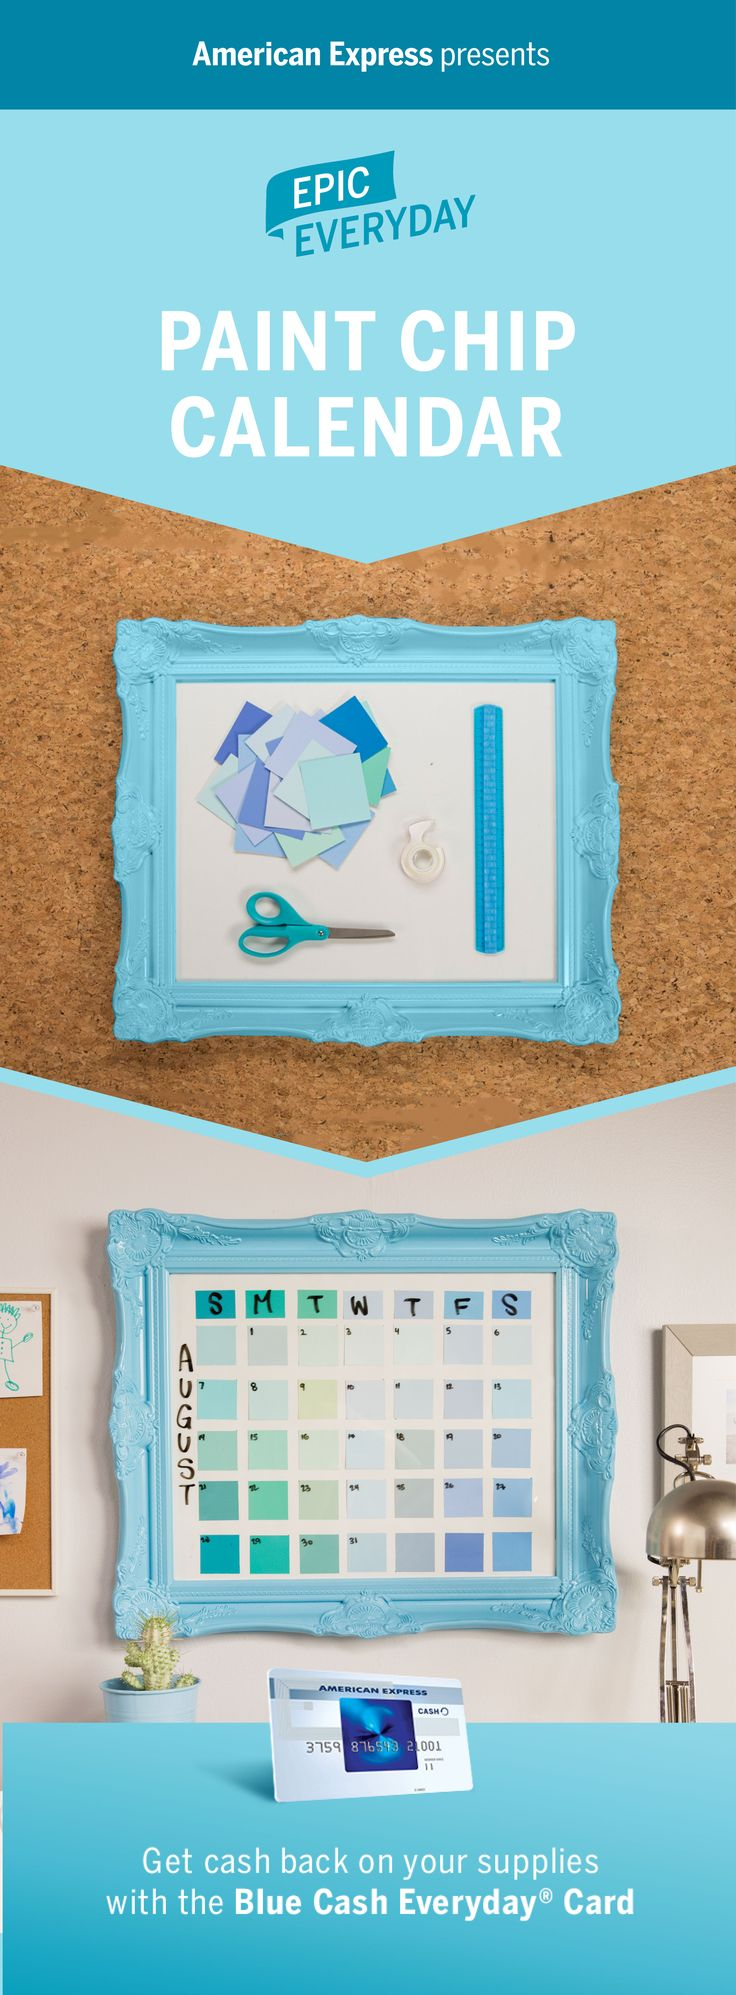 Add some epic color to your office or home with a DIY project. We partnered with Buzzfeed for this Paint Chip Calendar tutorial. Get creative with paint chips, a large picture frame and dry erase markers. You can turn your monthly planner into a wall art idea you'll love! Plus, when you shop for materials, get cash back on purchases with the Blue Cash Everyday Card from American Express. Terms apply. Learn more at americanexpress.com/epiceveryday. Click the pin to watch how to make it.